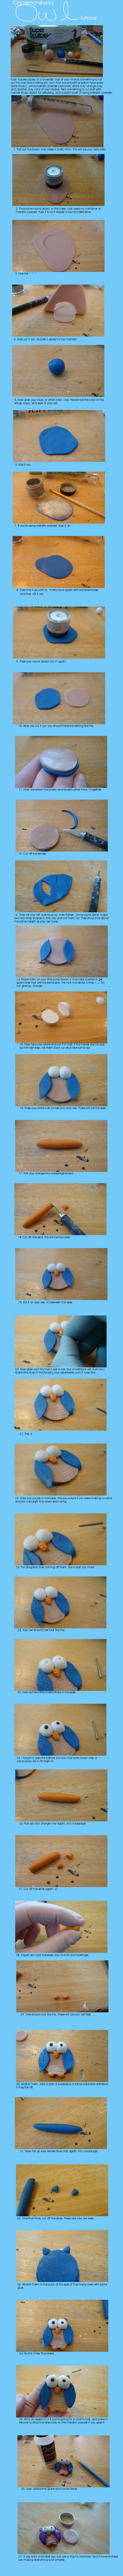 Clay Owl Tutorial: Owl Tutorials, Charms, Canes Tutorials, Clay Owl, Modelage, Cinnamonsky, Polymer Clay, Clay Idea, Clay Tutorials